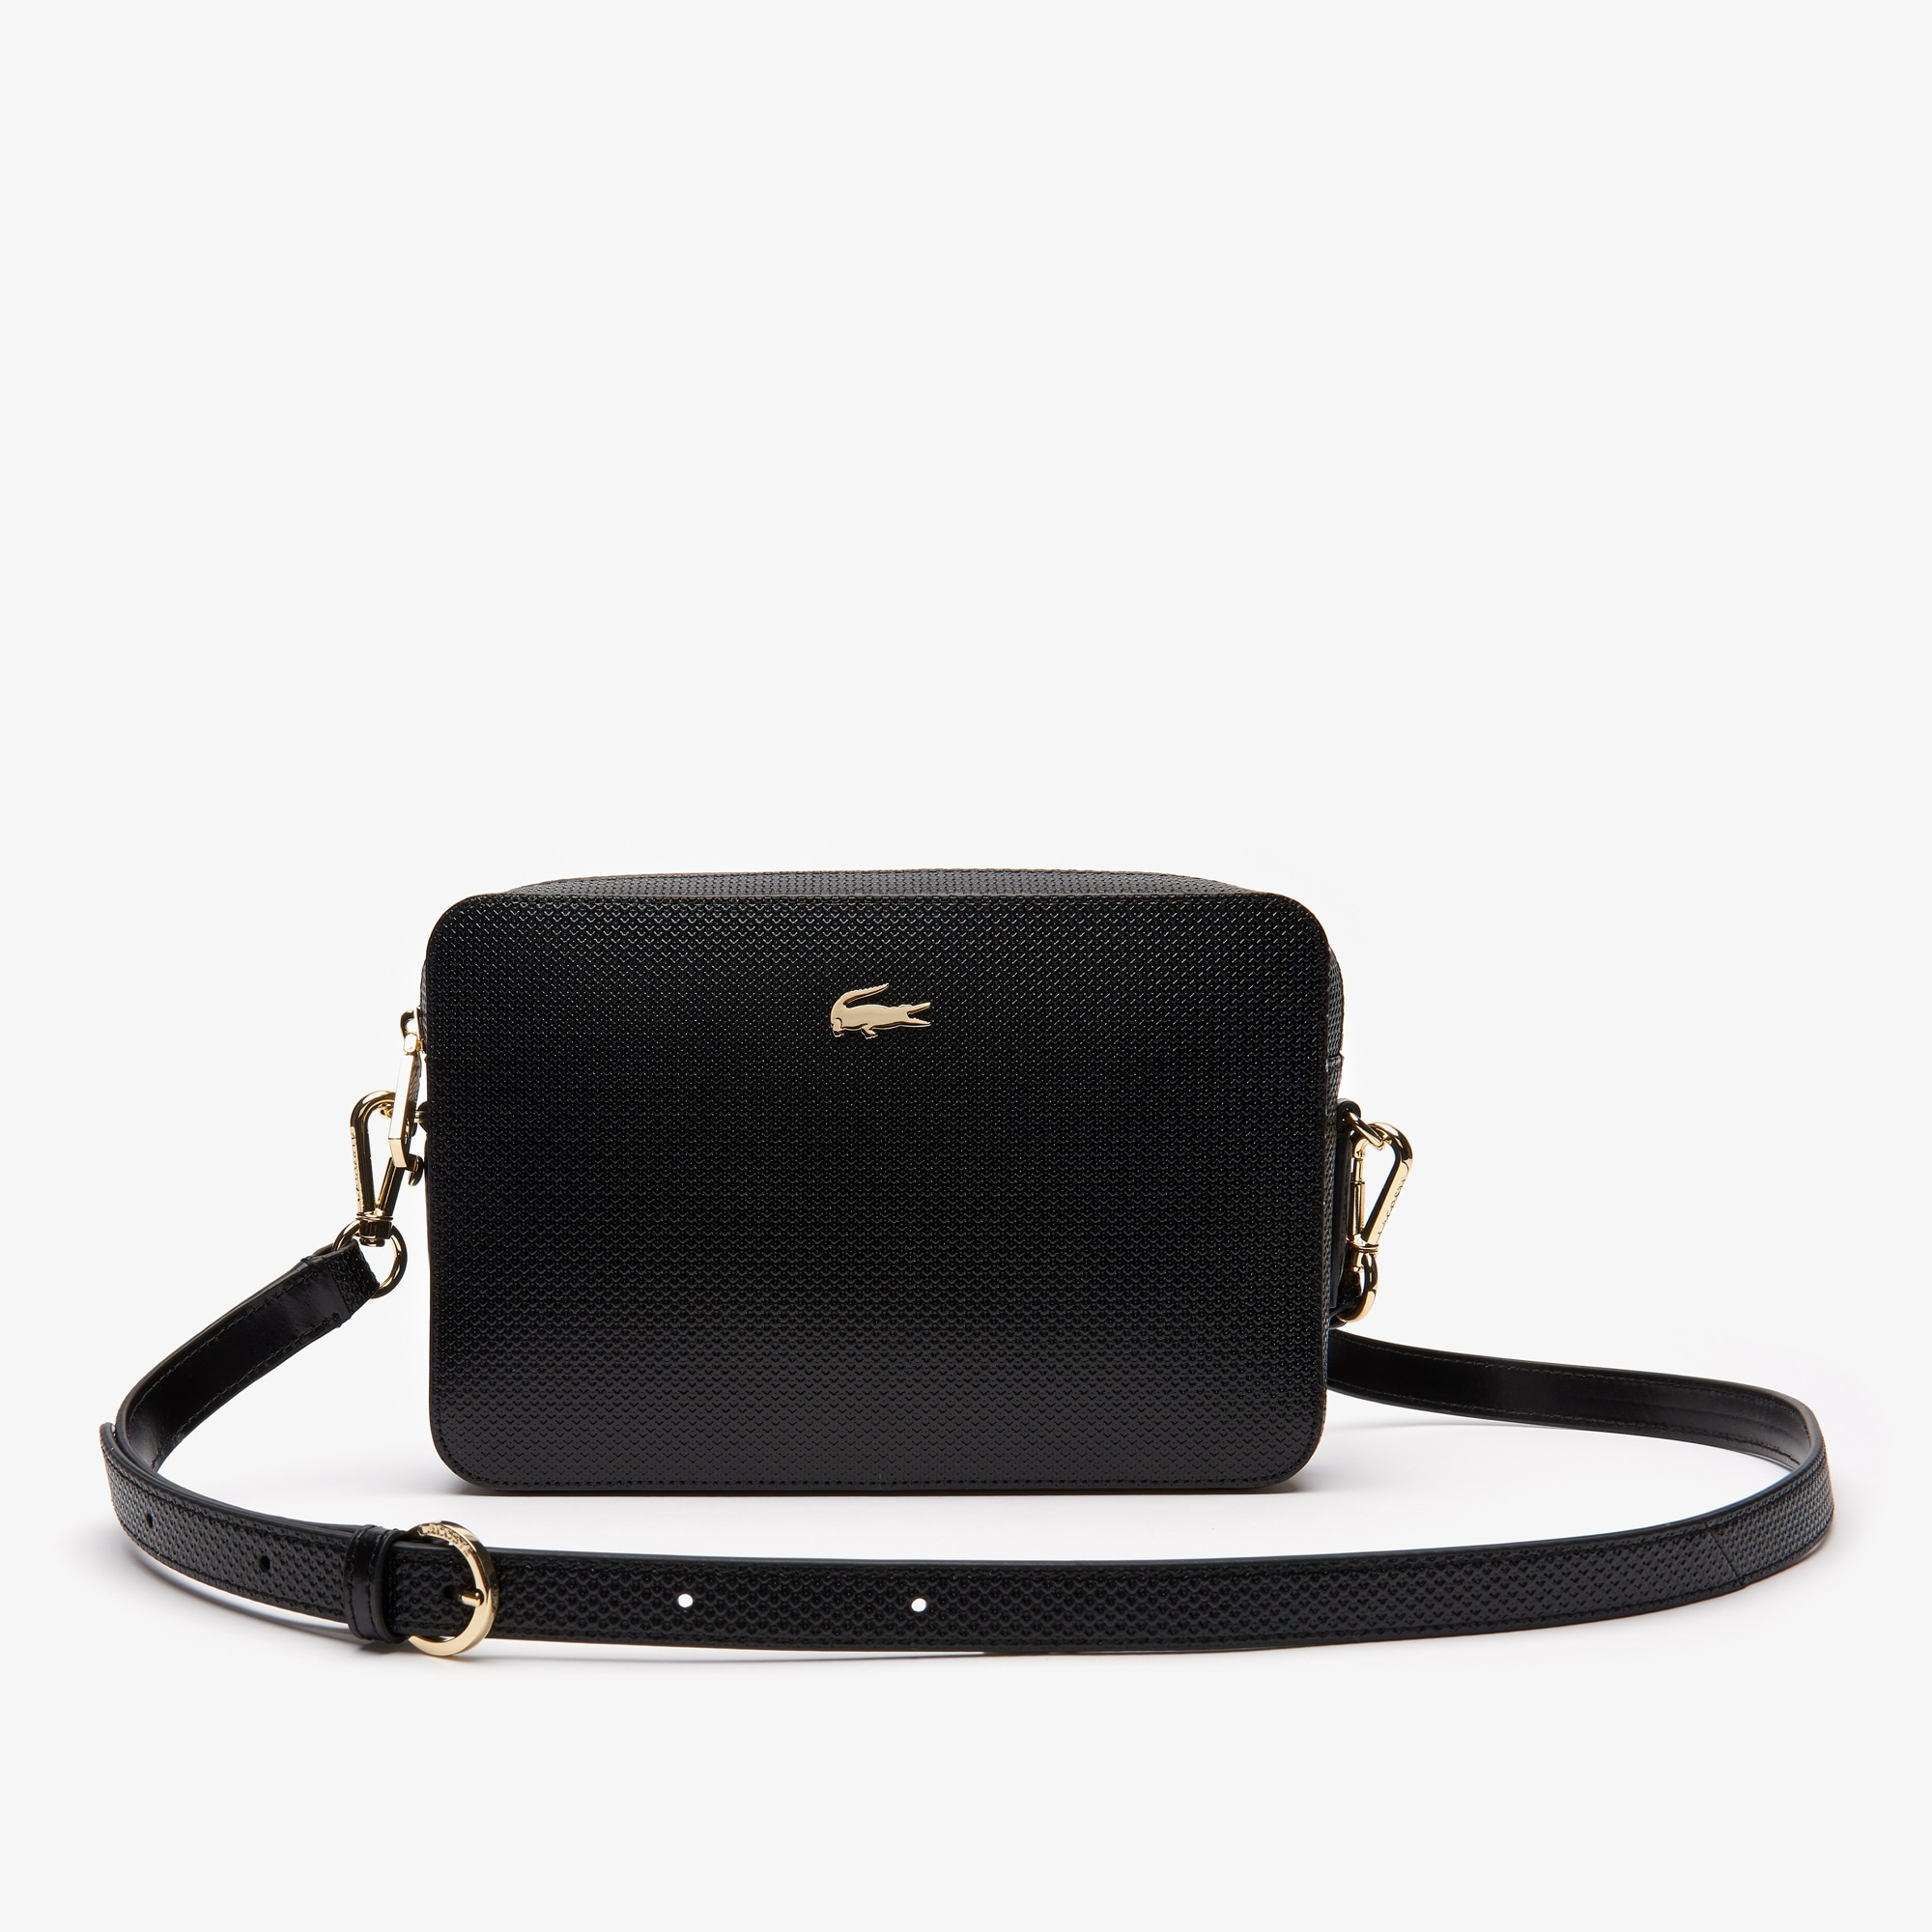 Chantaco Bags Leather Goods Lacoste